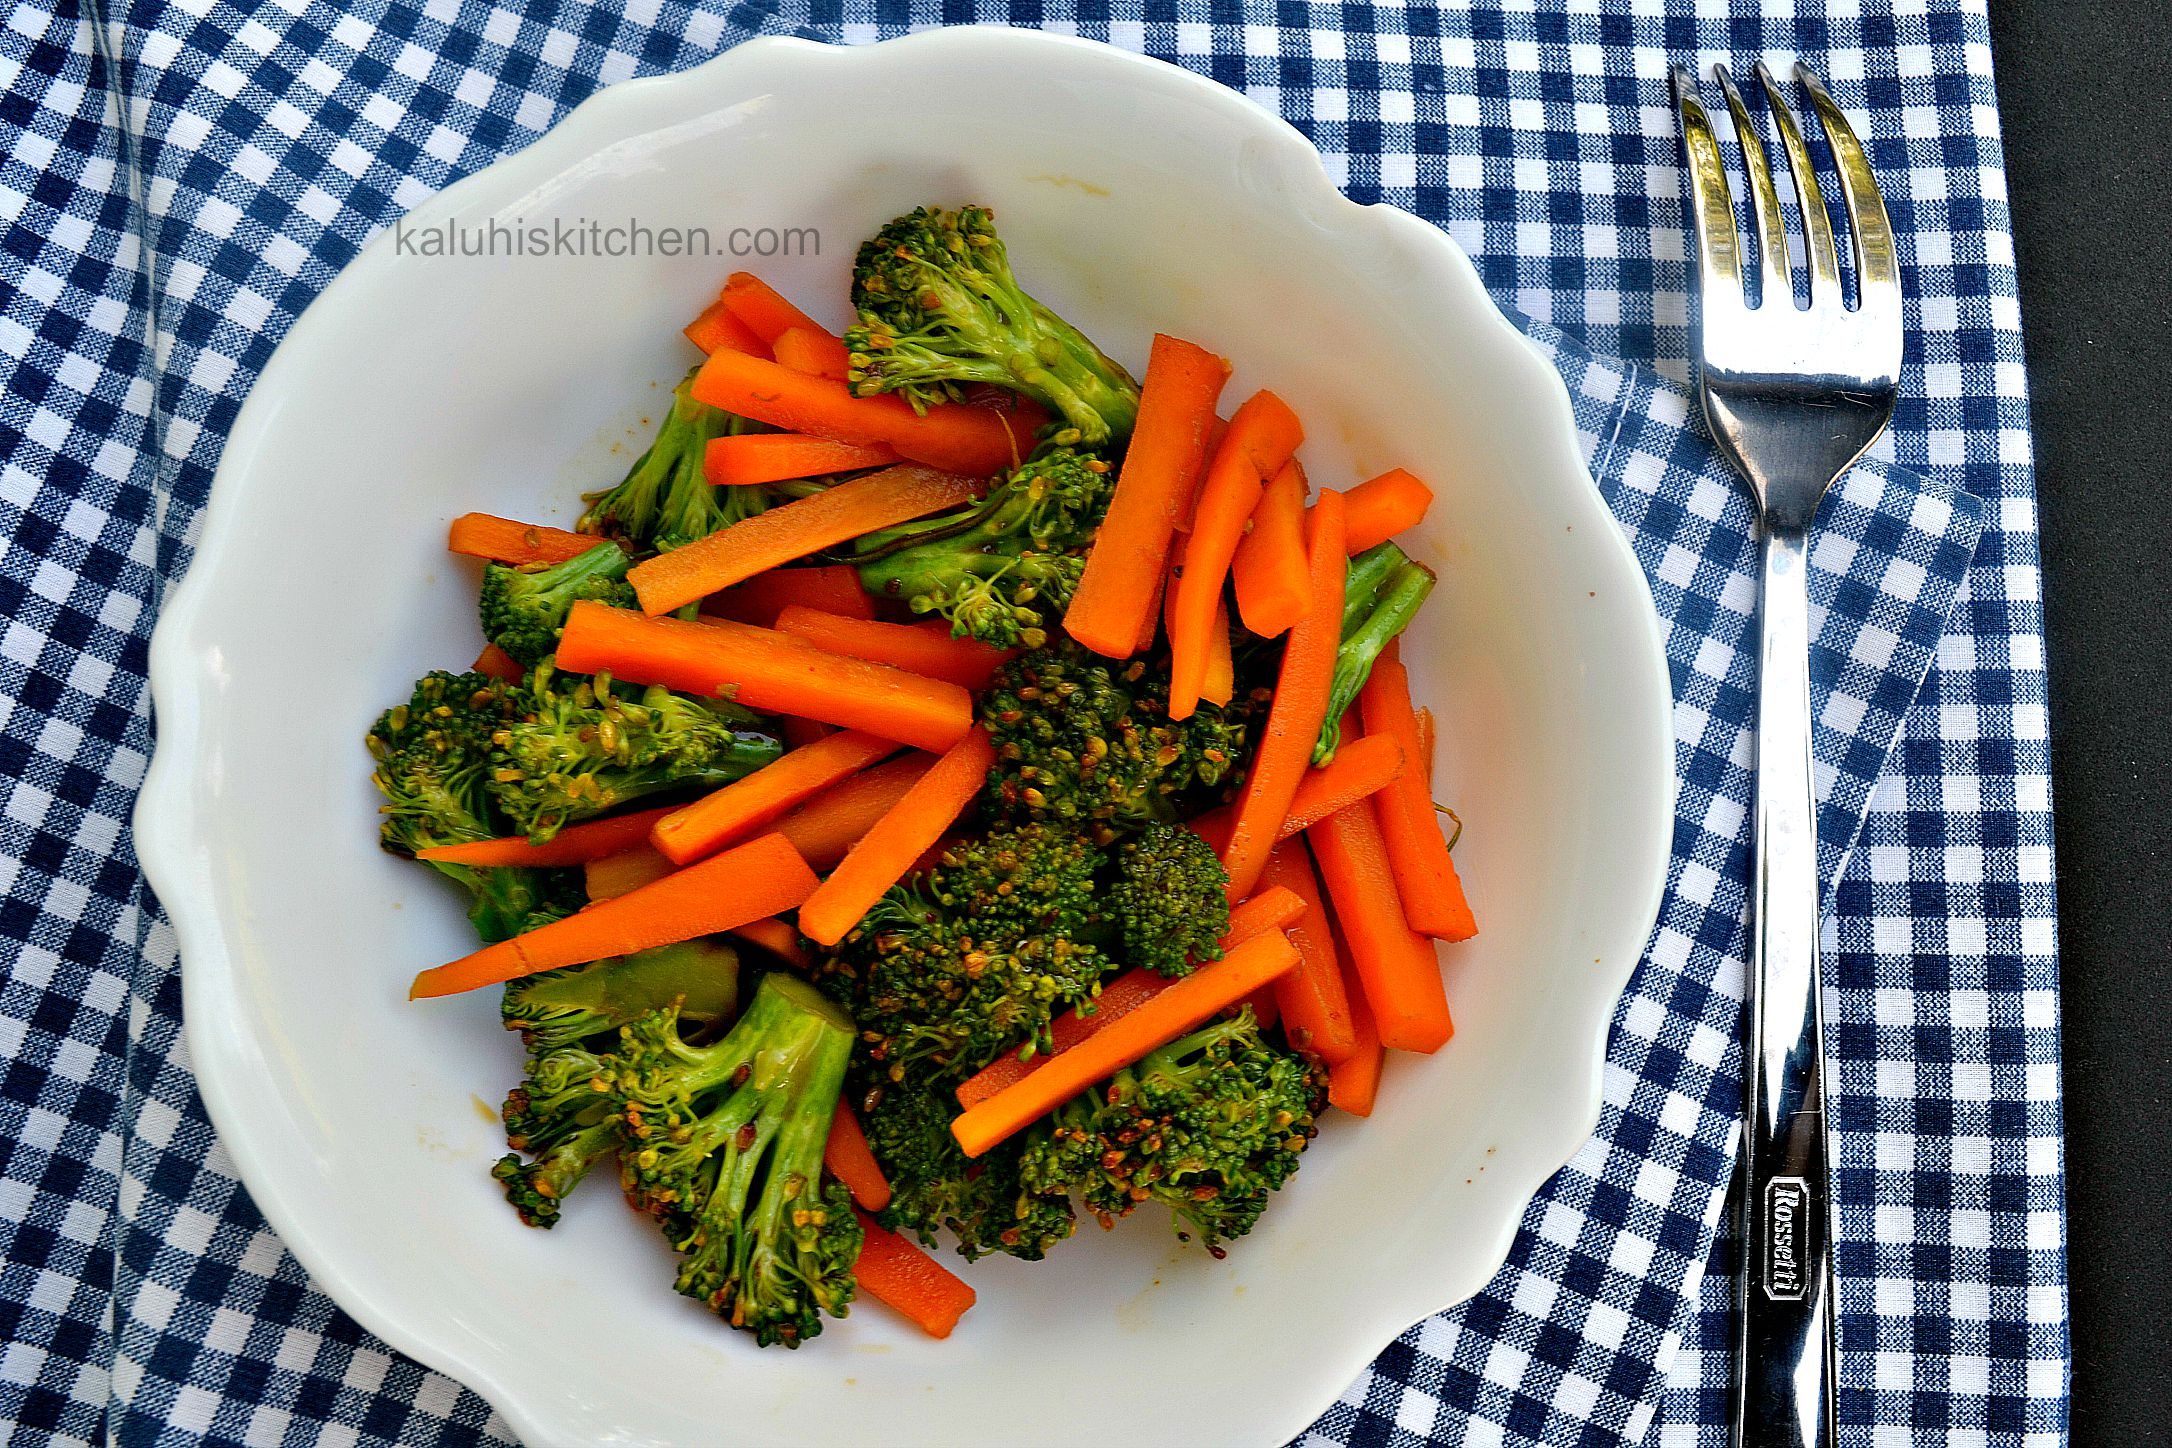 kenyan food blogs_african food blogs_carrots and broccoli steamed and served with some chilli caramel serves the perfect ballance between sweet and spicy_kaluhiskitchen.com